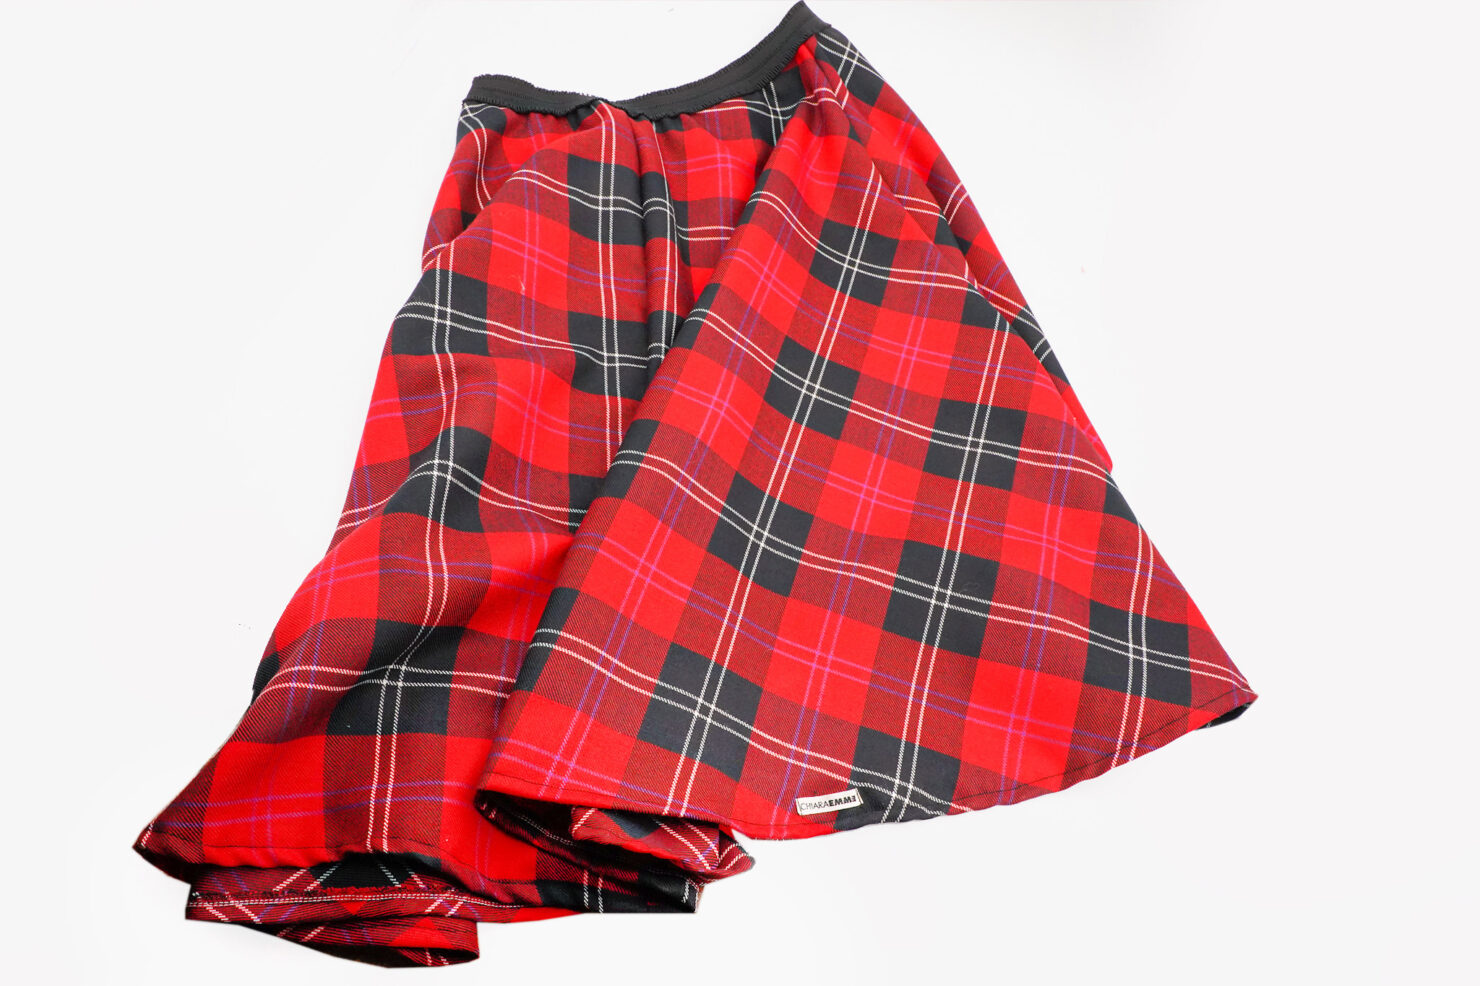 Half-wheel skirt with front flounce Dior model RED